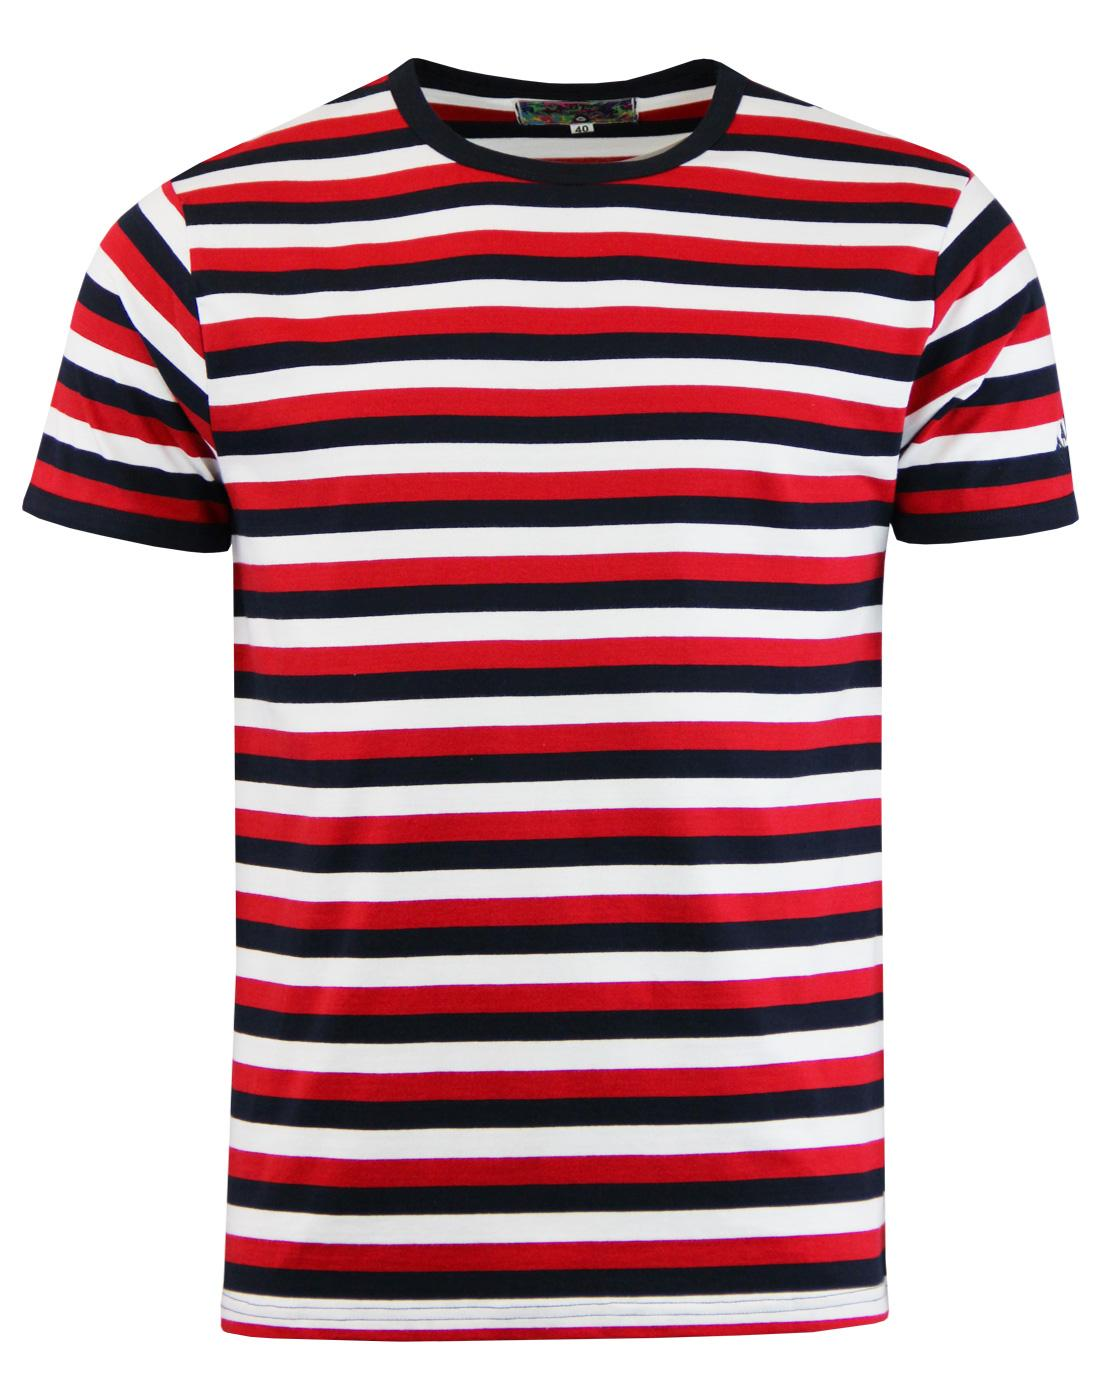 madcap feeder stripe t-shirt white navy red mod